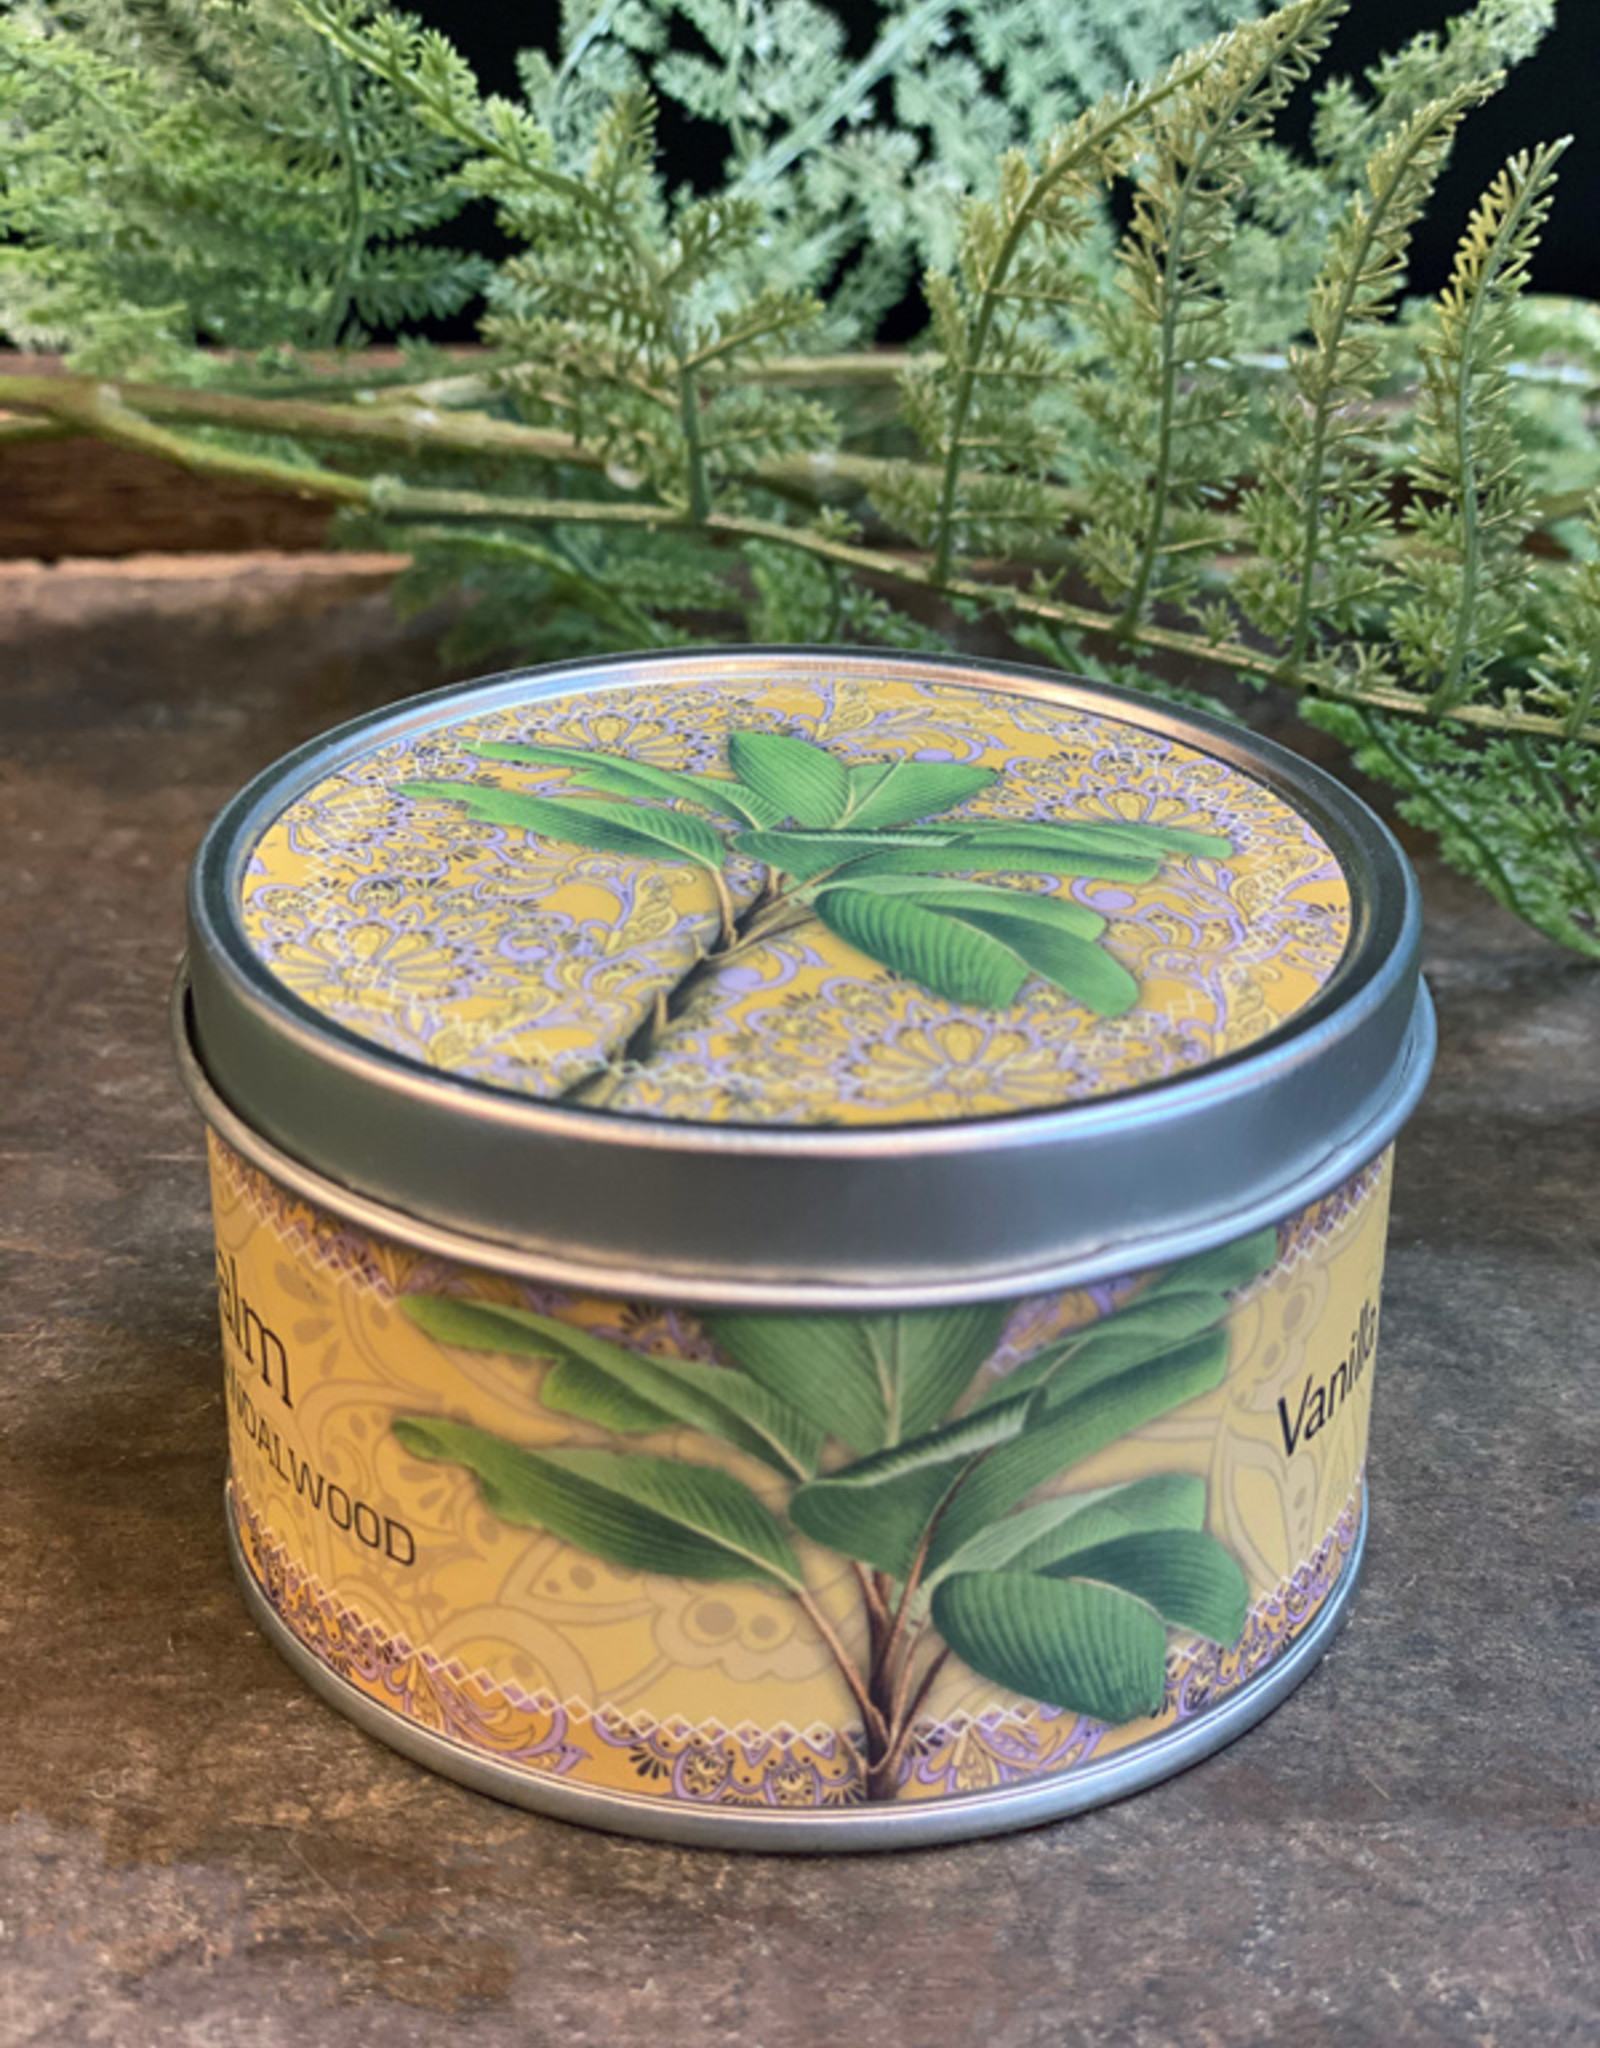 Vanilla Fly SCENTED CANDLE - SOY WAX - sandalwood